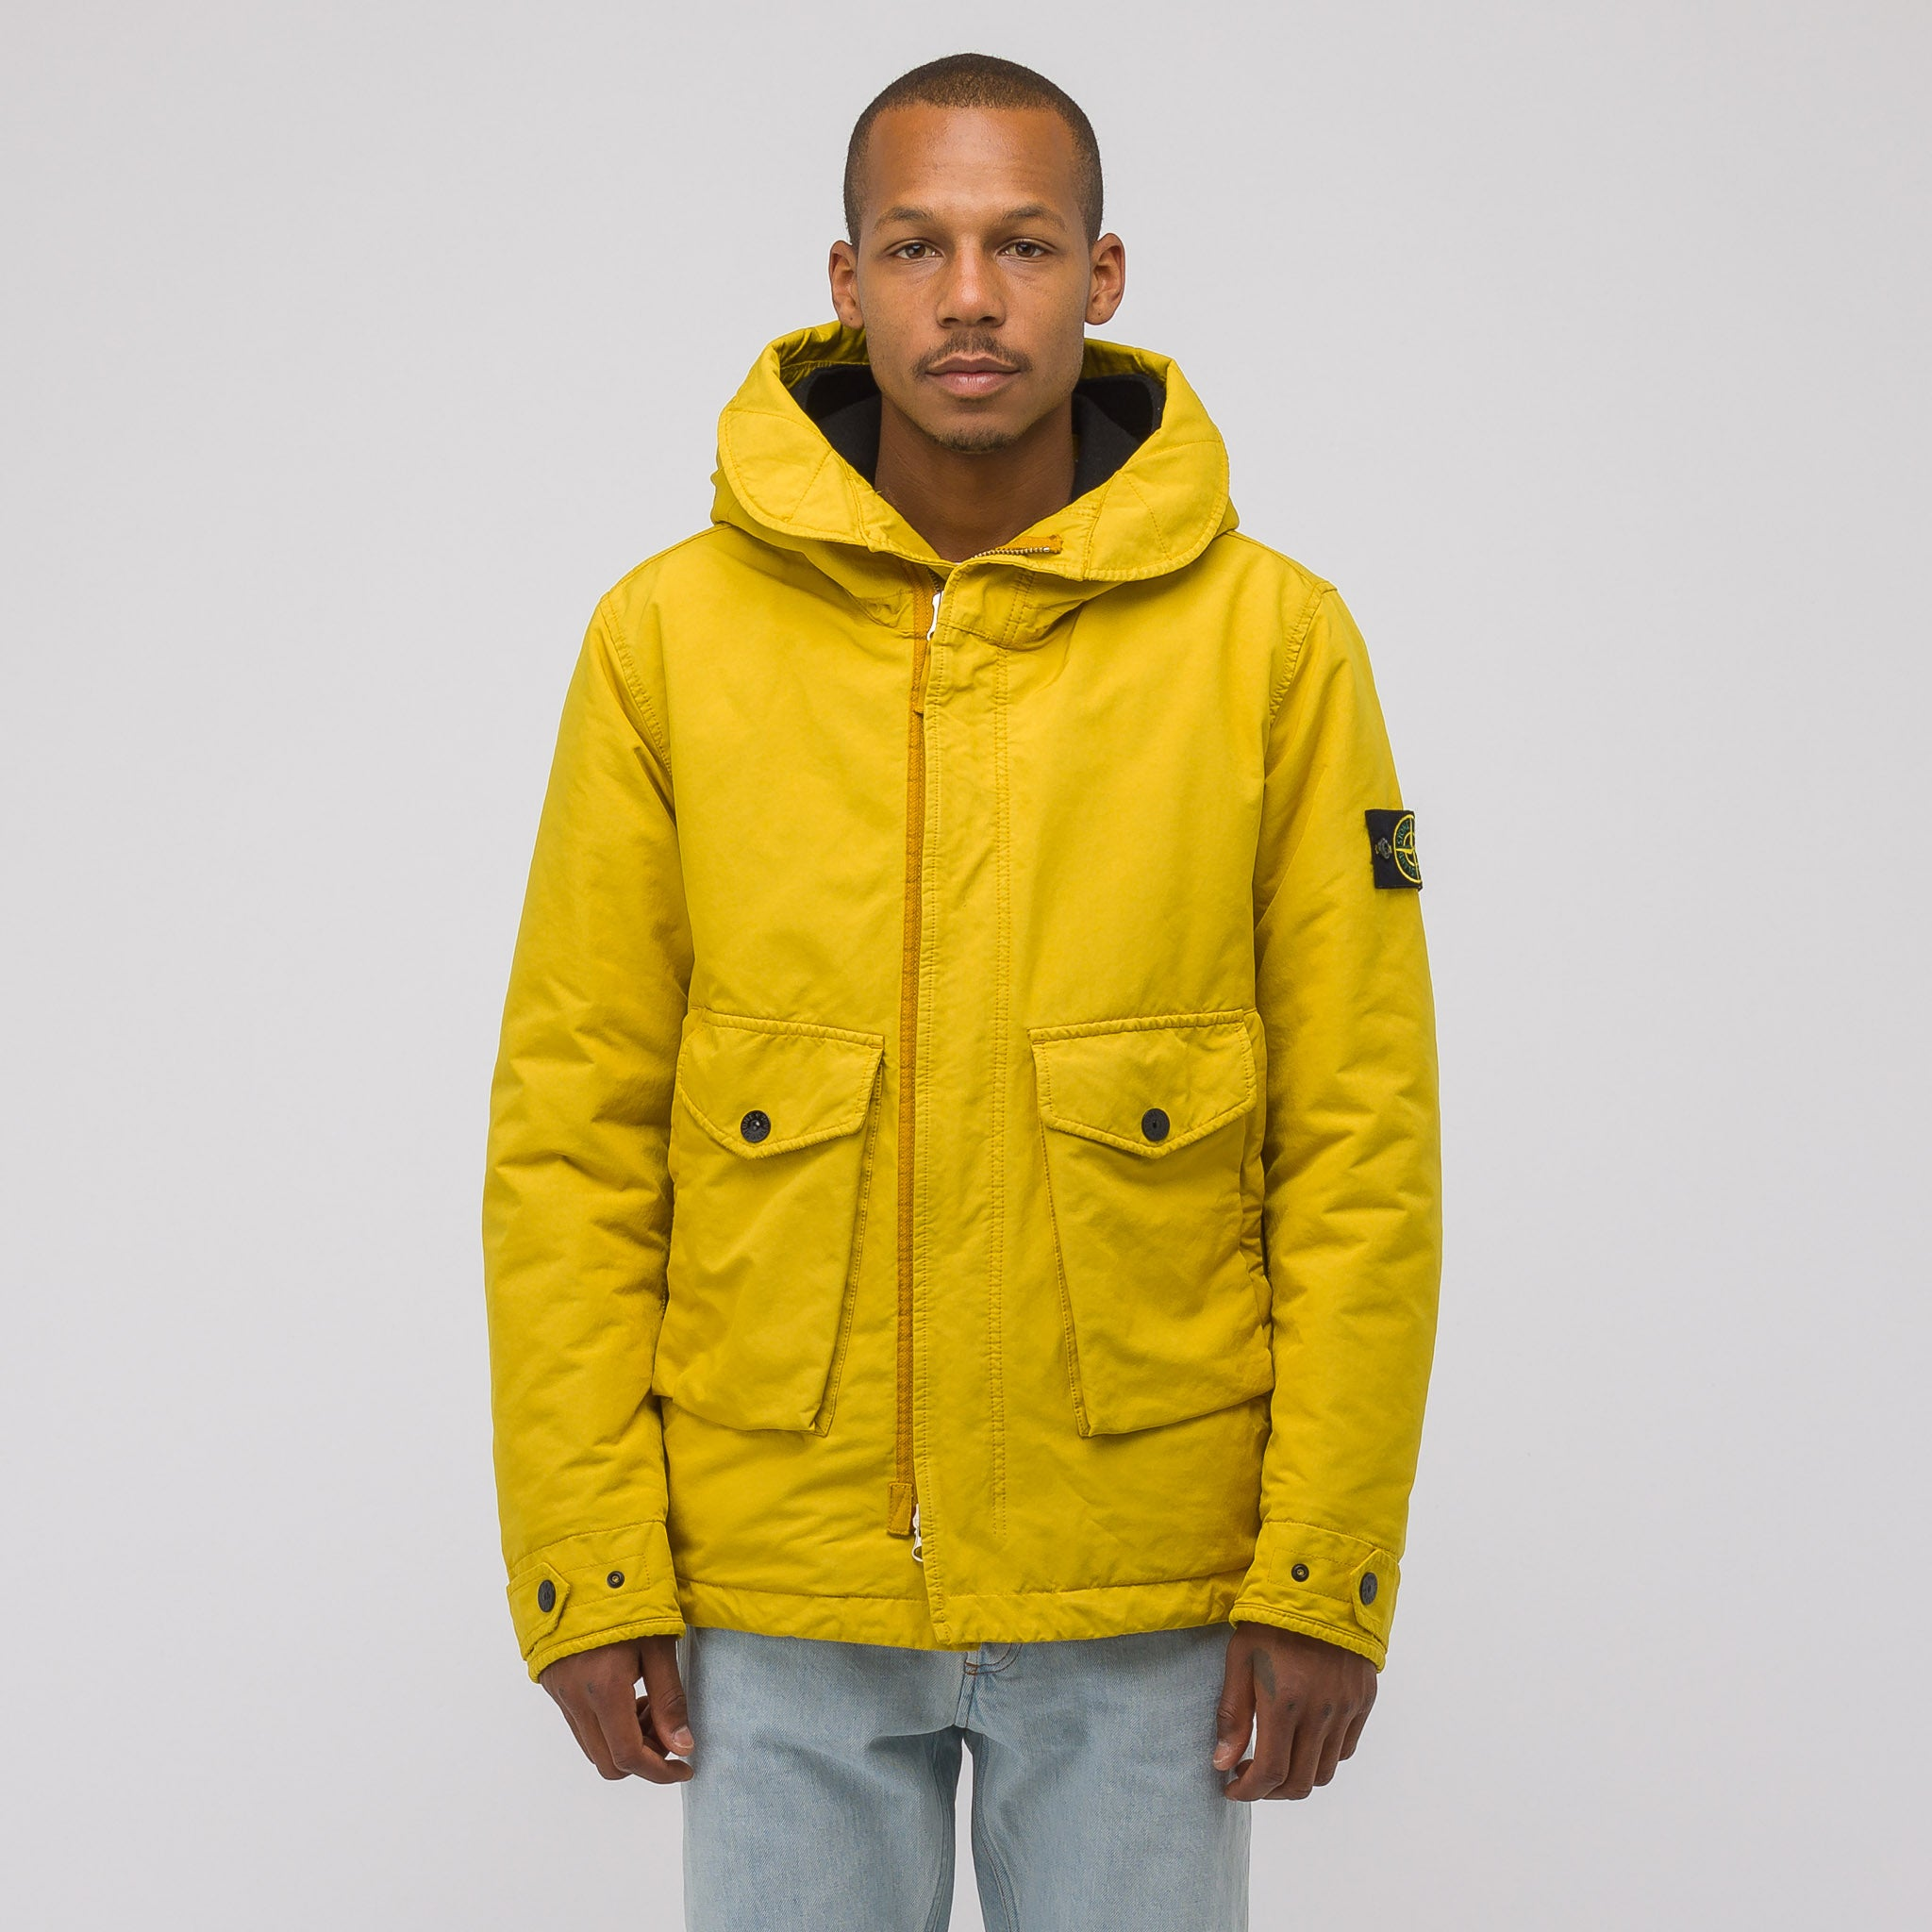 43249 David-TC Primaloft® Insulated Jacket in Yellow